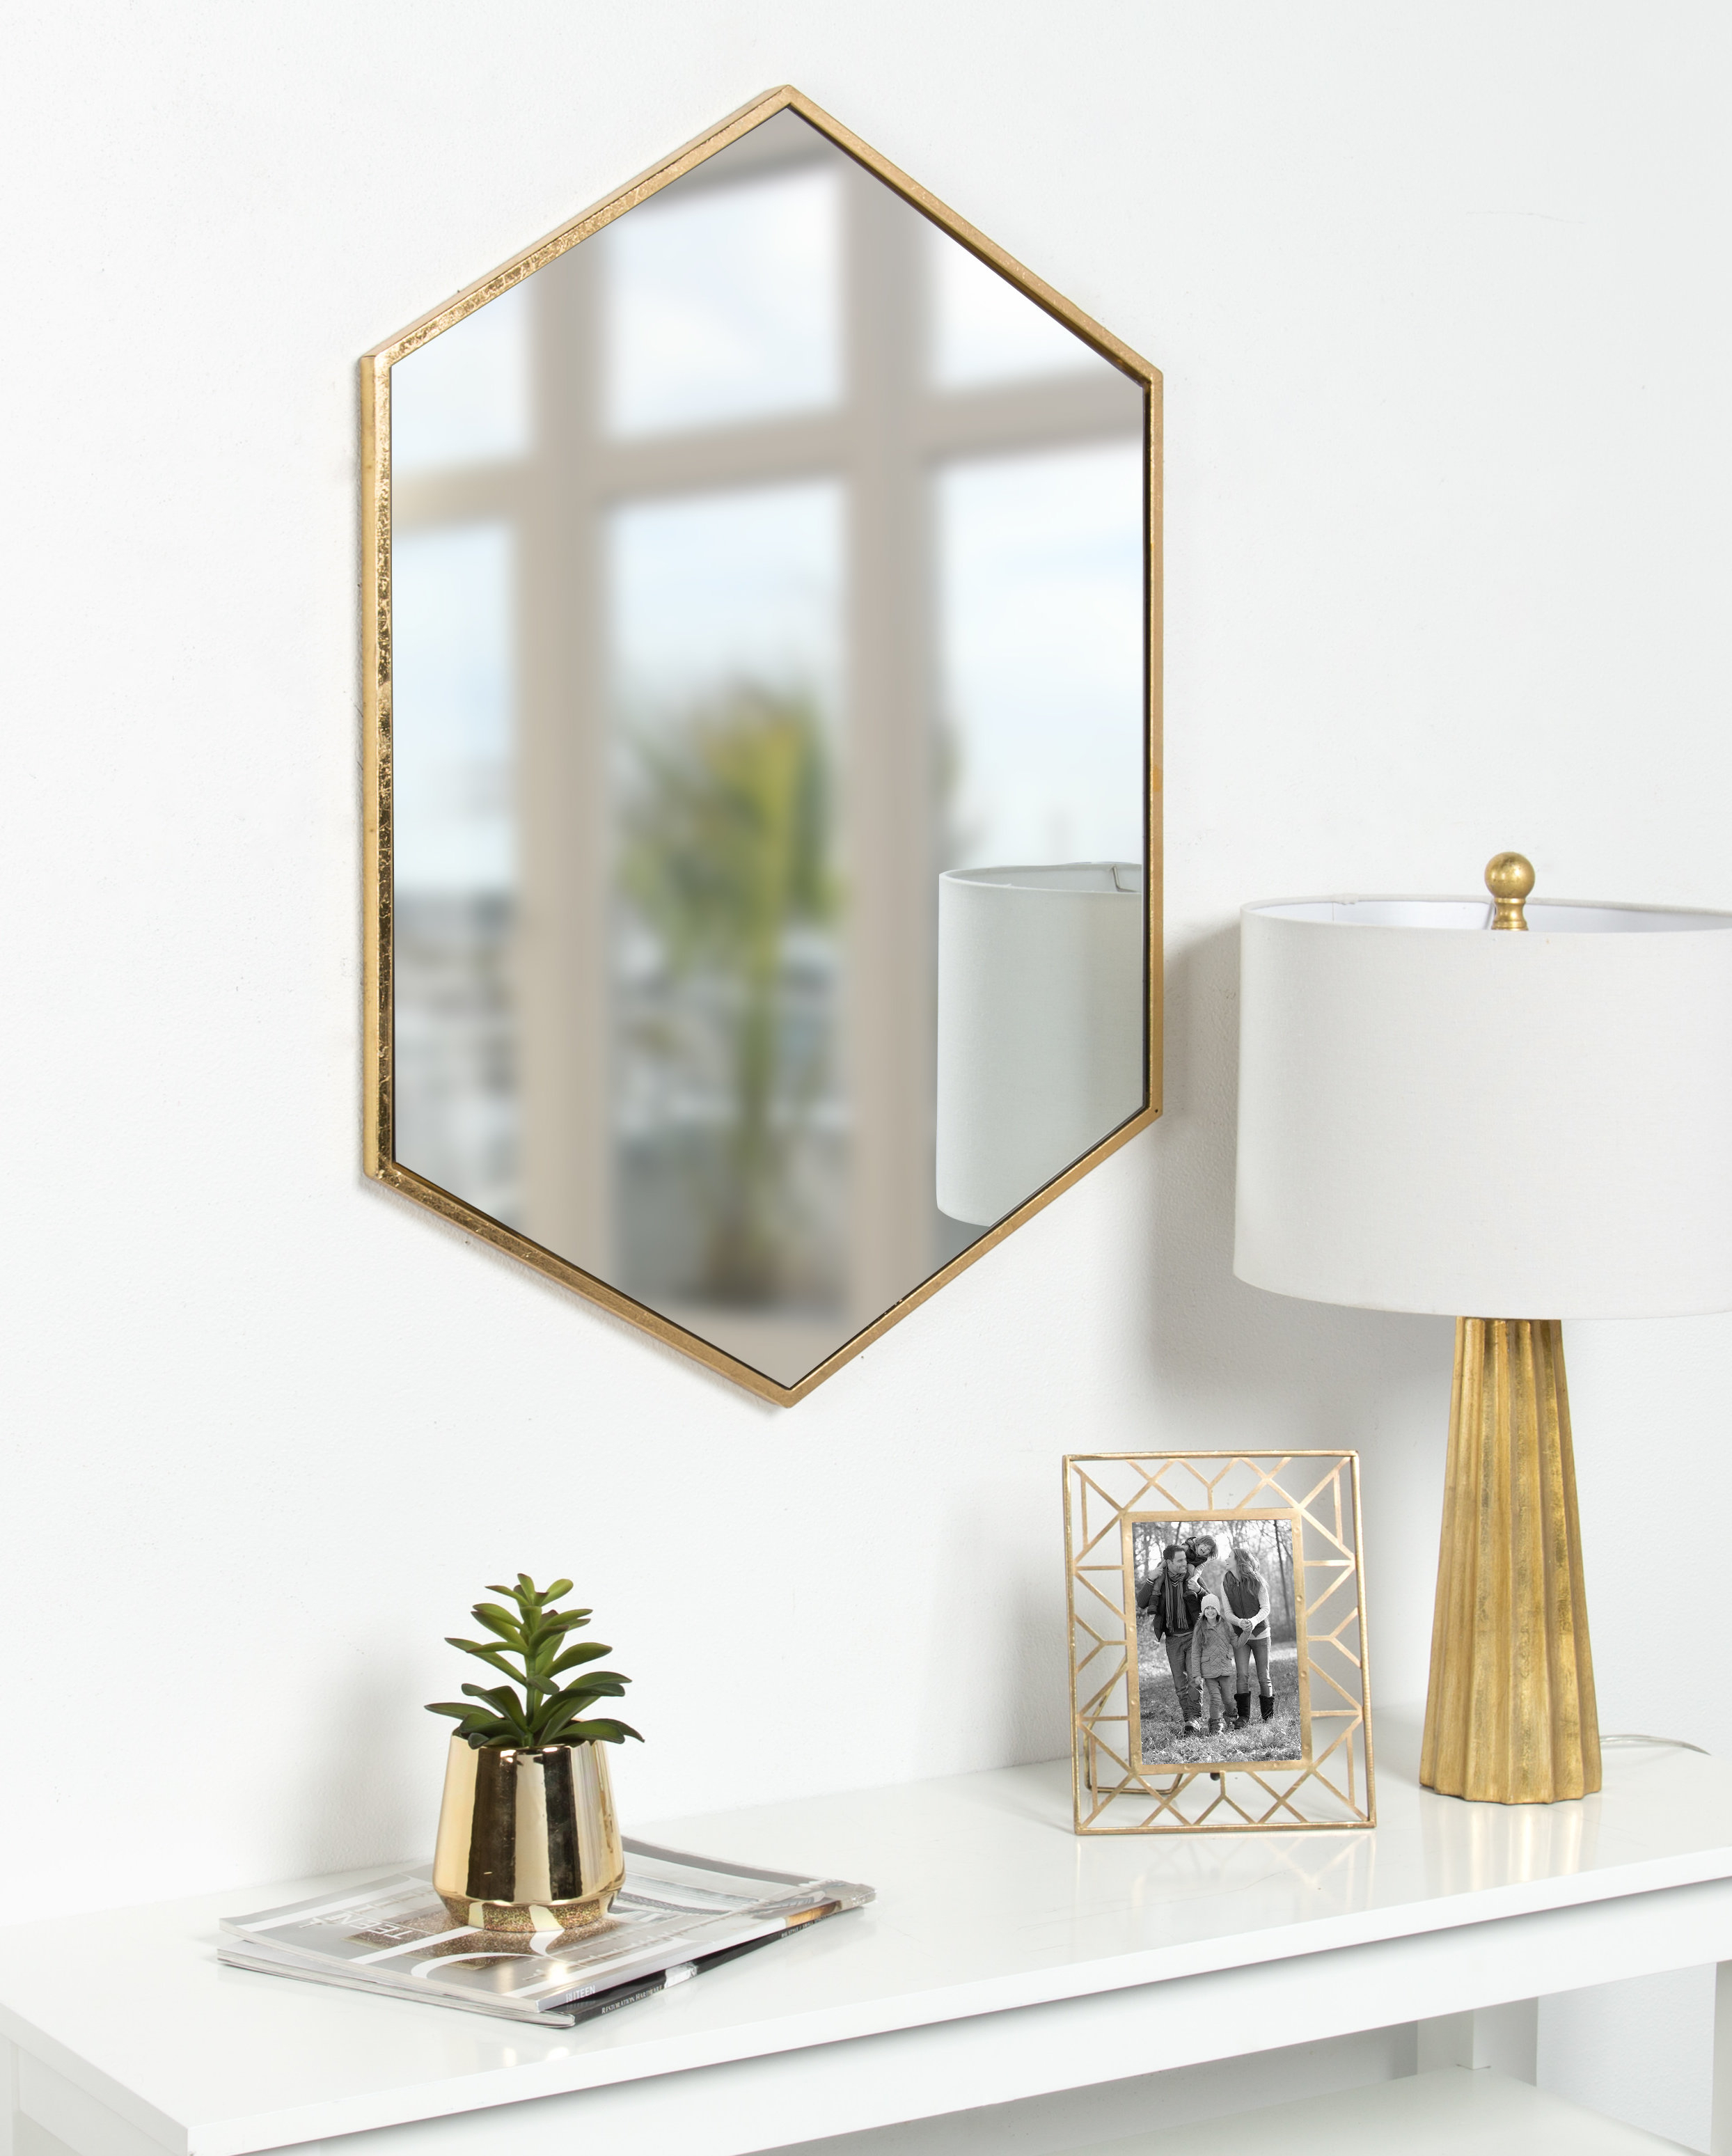 Hentz Modern & Contemporary Wall Mirror Intended For Dekalb Modern & Contemporary Distressed Accent Mirrors (Image 7 of 20)